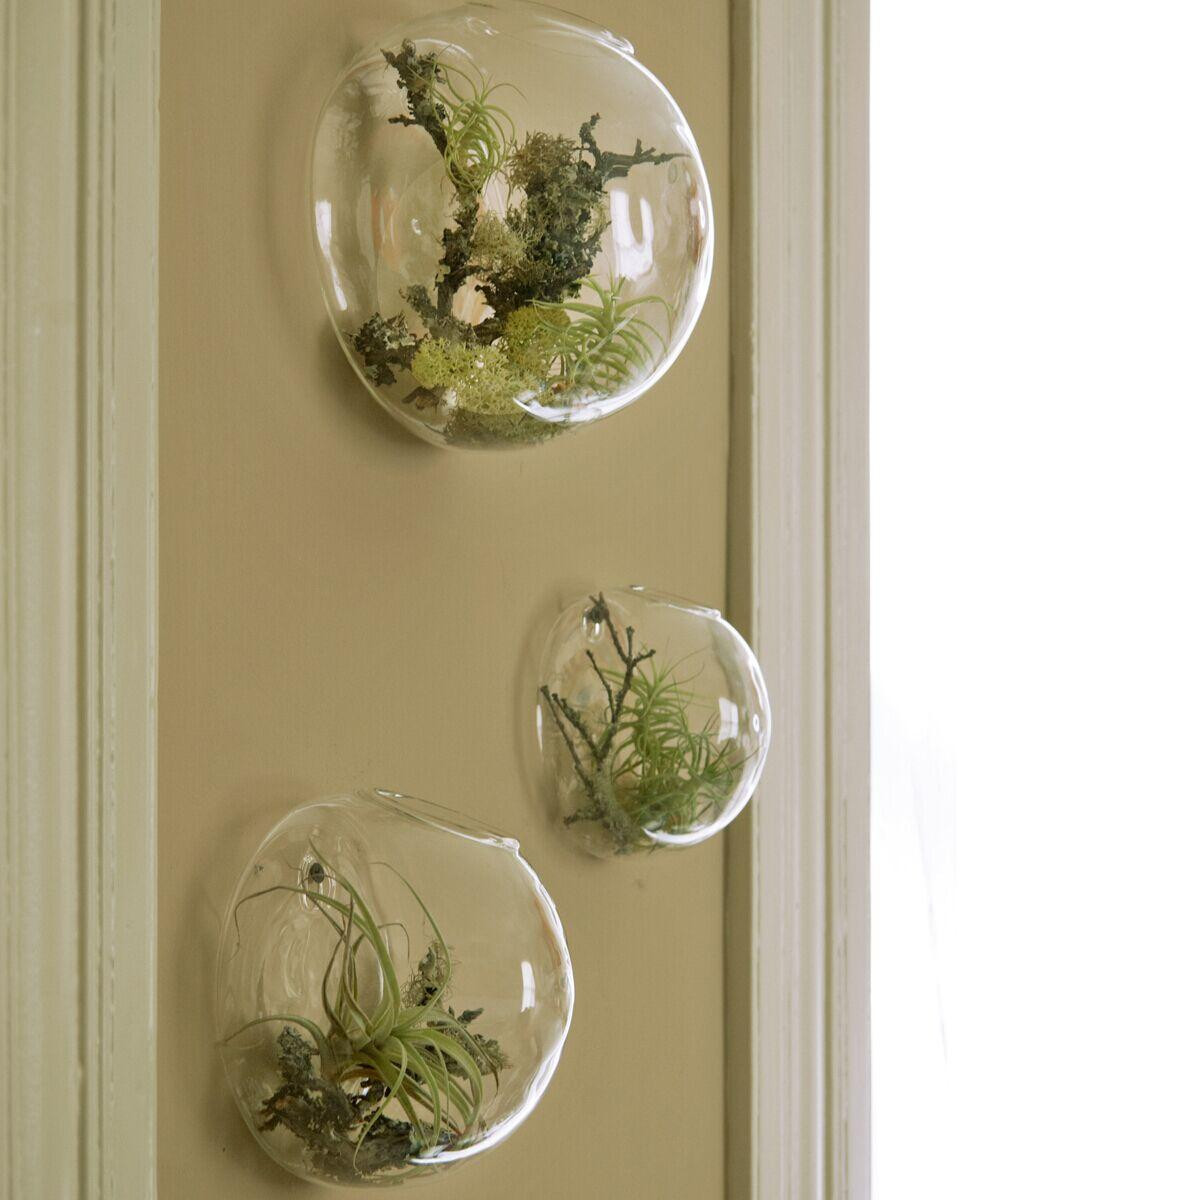 clear glass vase set of wall bubble terrariums glass wall vase for flowers indoor plants within wall bubble terrariums glass wall vase for flowers indoor plants wall mounted planter for succulents air plant holders home decor inexpensive floor vases